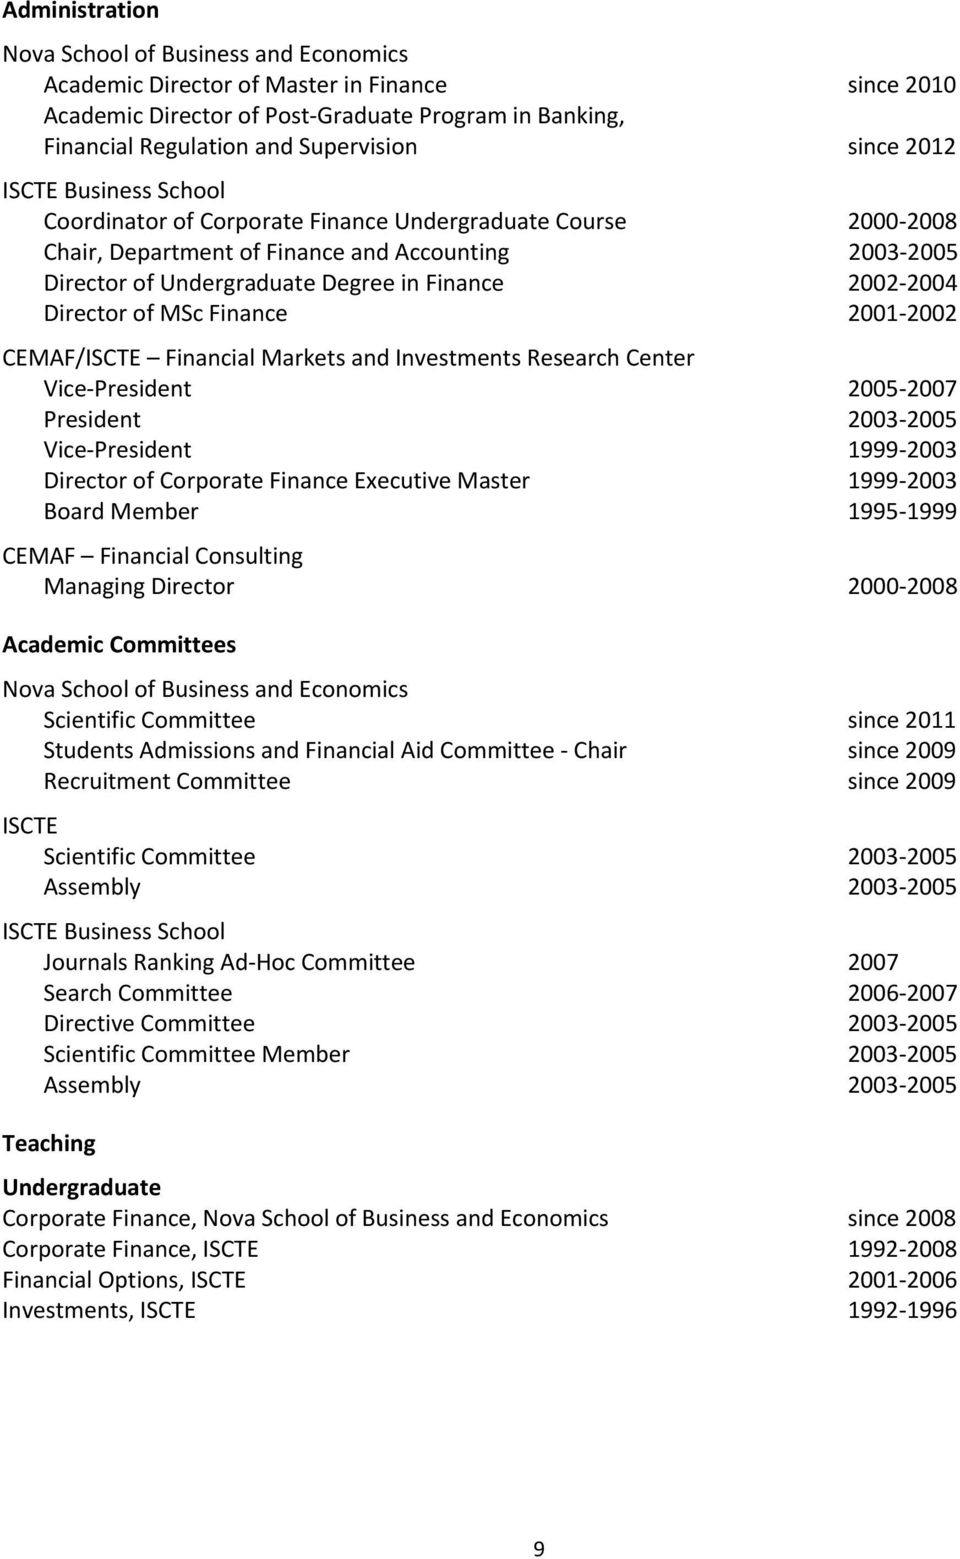 2004 Director of MSc Finance 2001 2002 CEMAF/ISCTE Financial Markets and Investments Research Center Vice President 2005 2007 President 2003 2005 Vice President 1999 2003 Director of Corporate